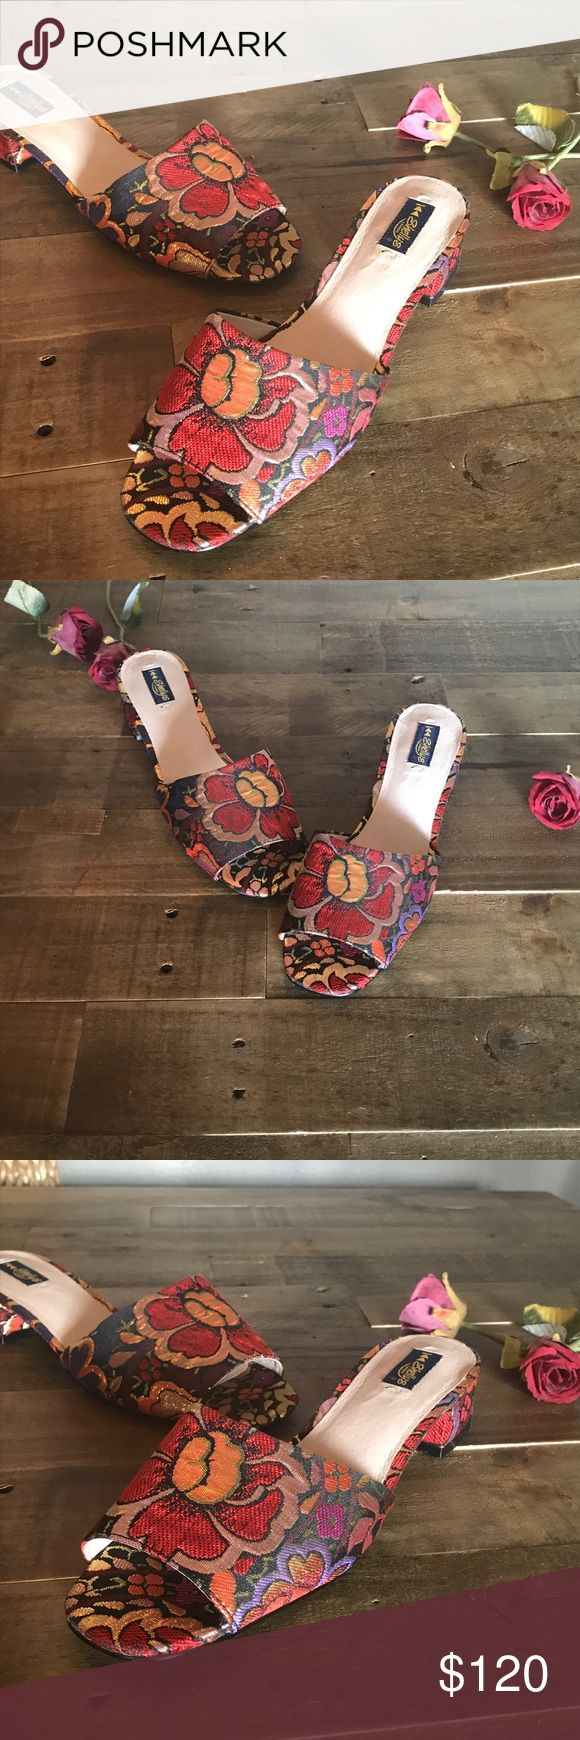 Anthropologie slippers sandals in red and gold Anthropologie  slippers sandals by Ashely's London in red and gold flower motif. Insoles feels padded soft leather. Oh my goodness these are simply stunning and very stylish.  European size 40 US 9.5. Anthropologie Shoes Slippers